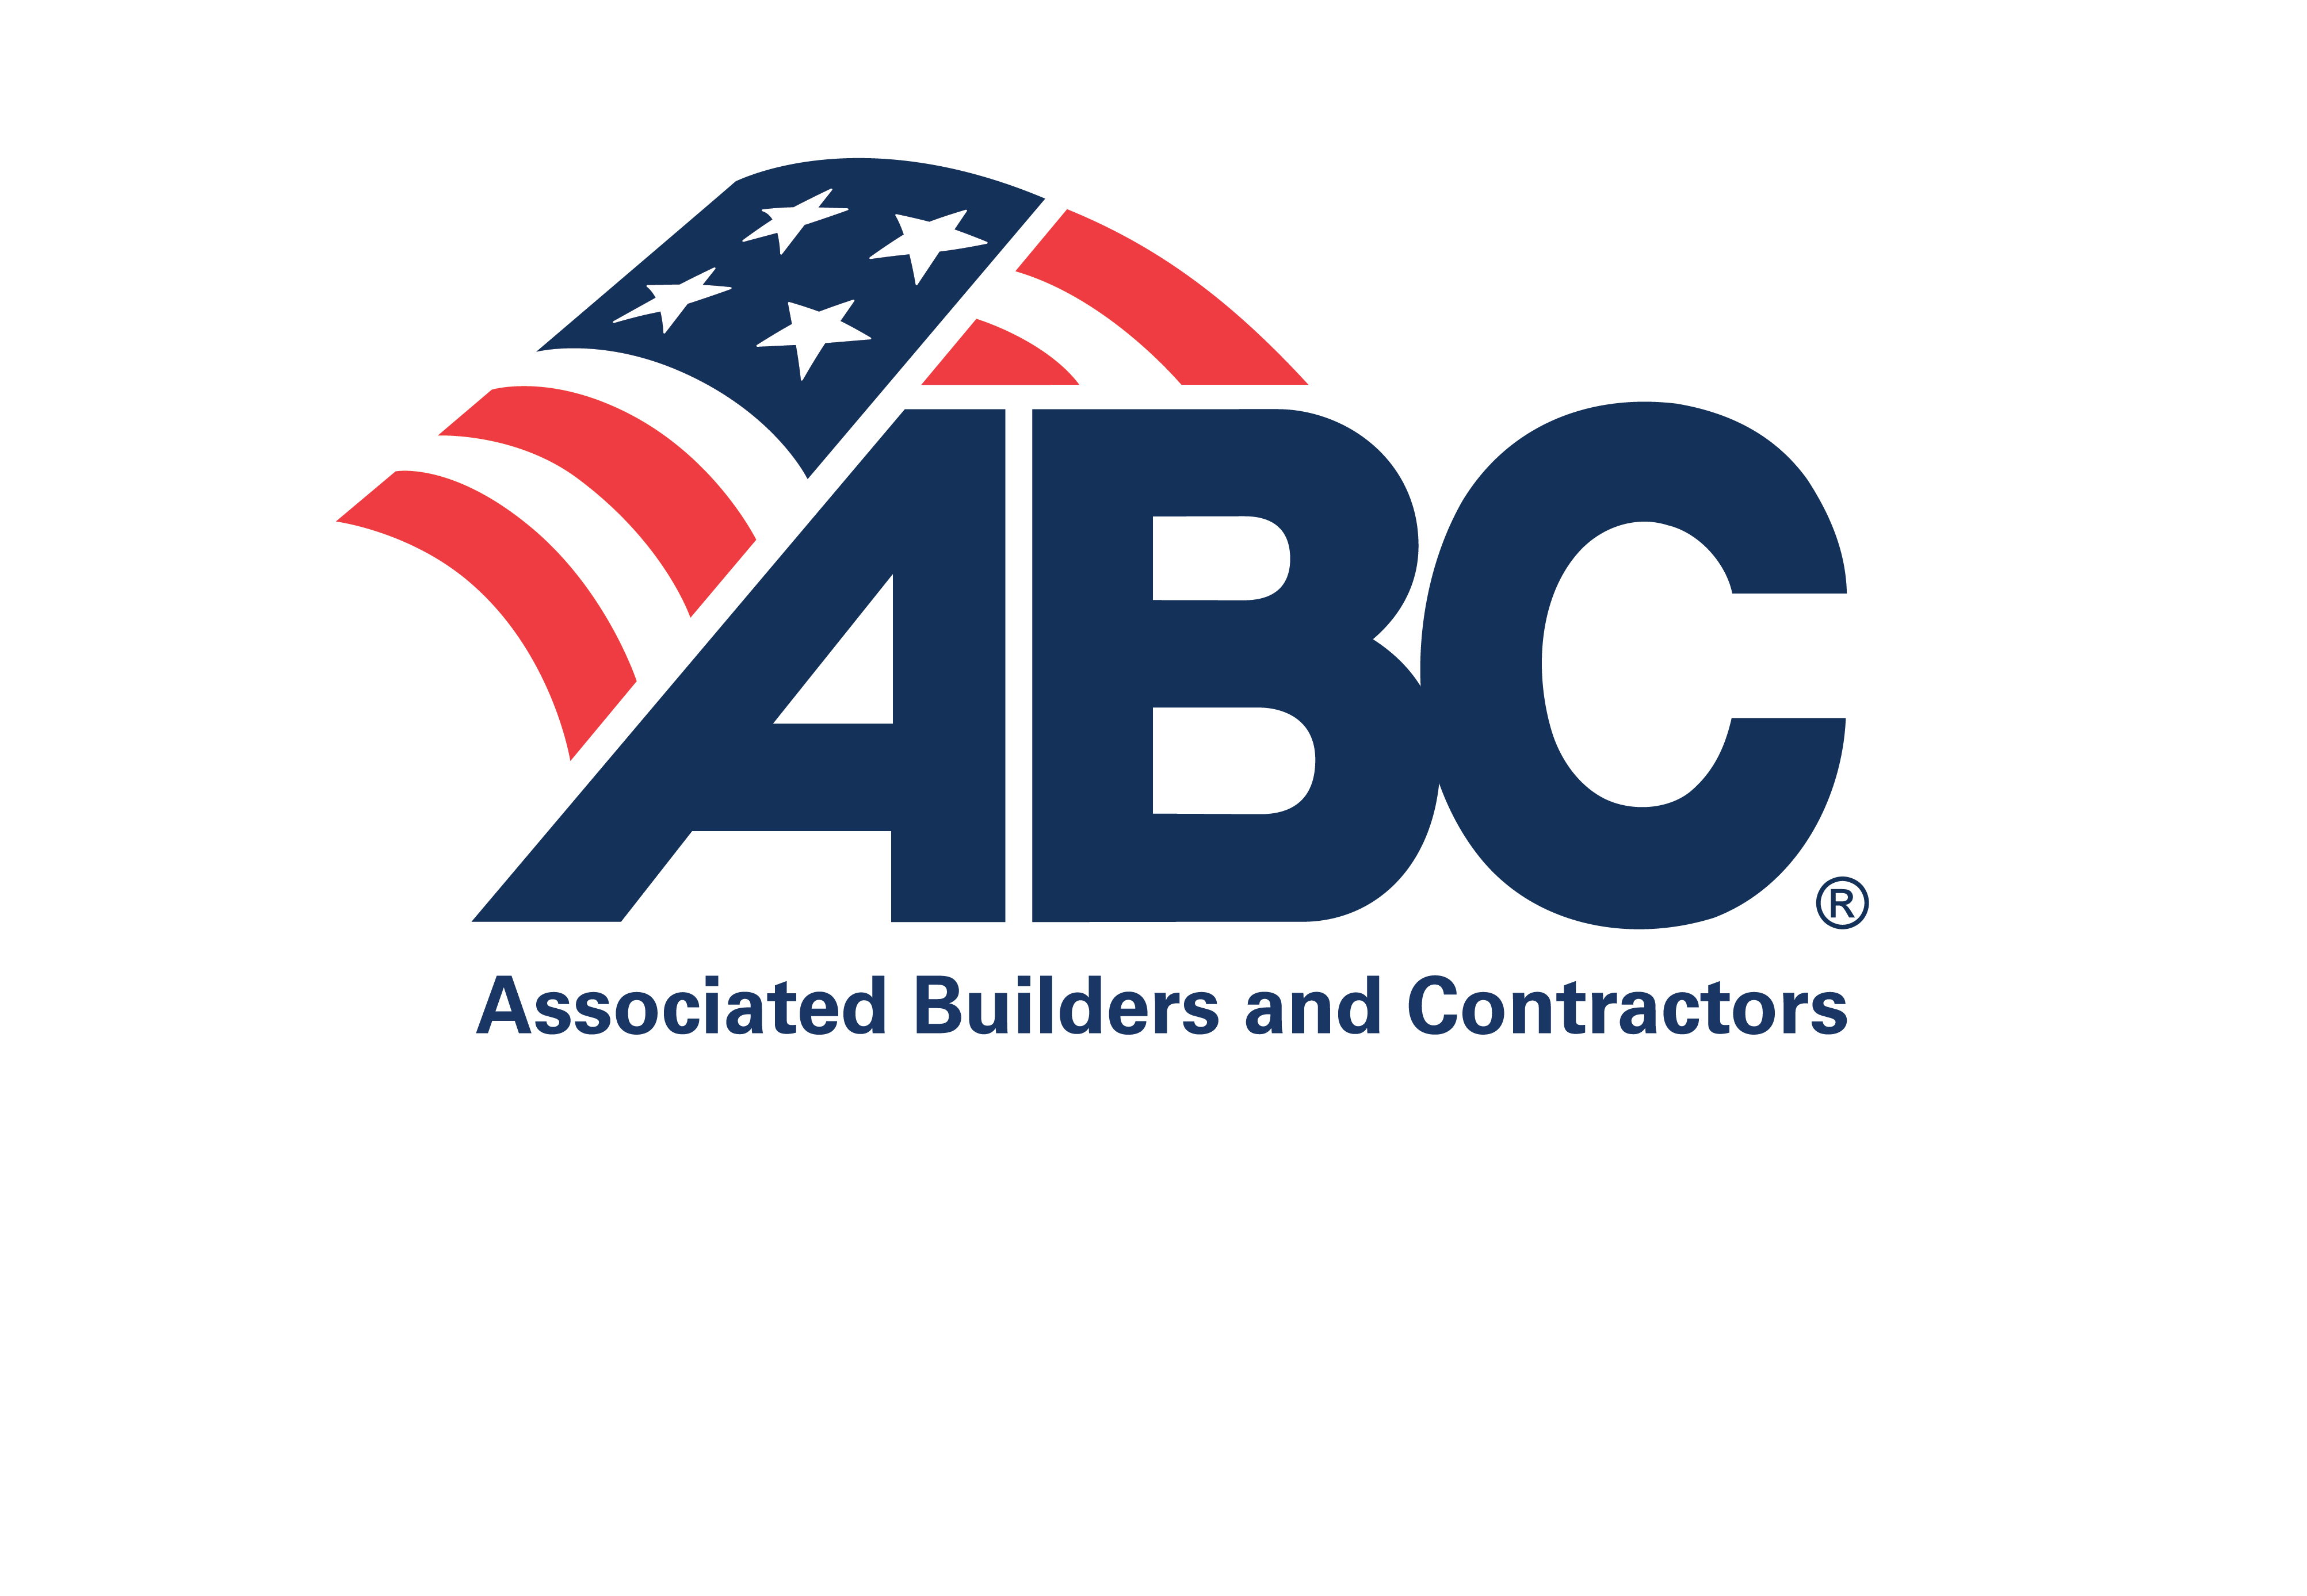 Associated Builders and Contractors is a client of Chris Zervas, an employee engagement and retention keynote speaker in Oklahoma